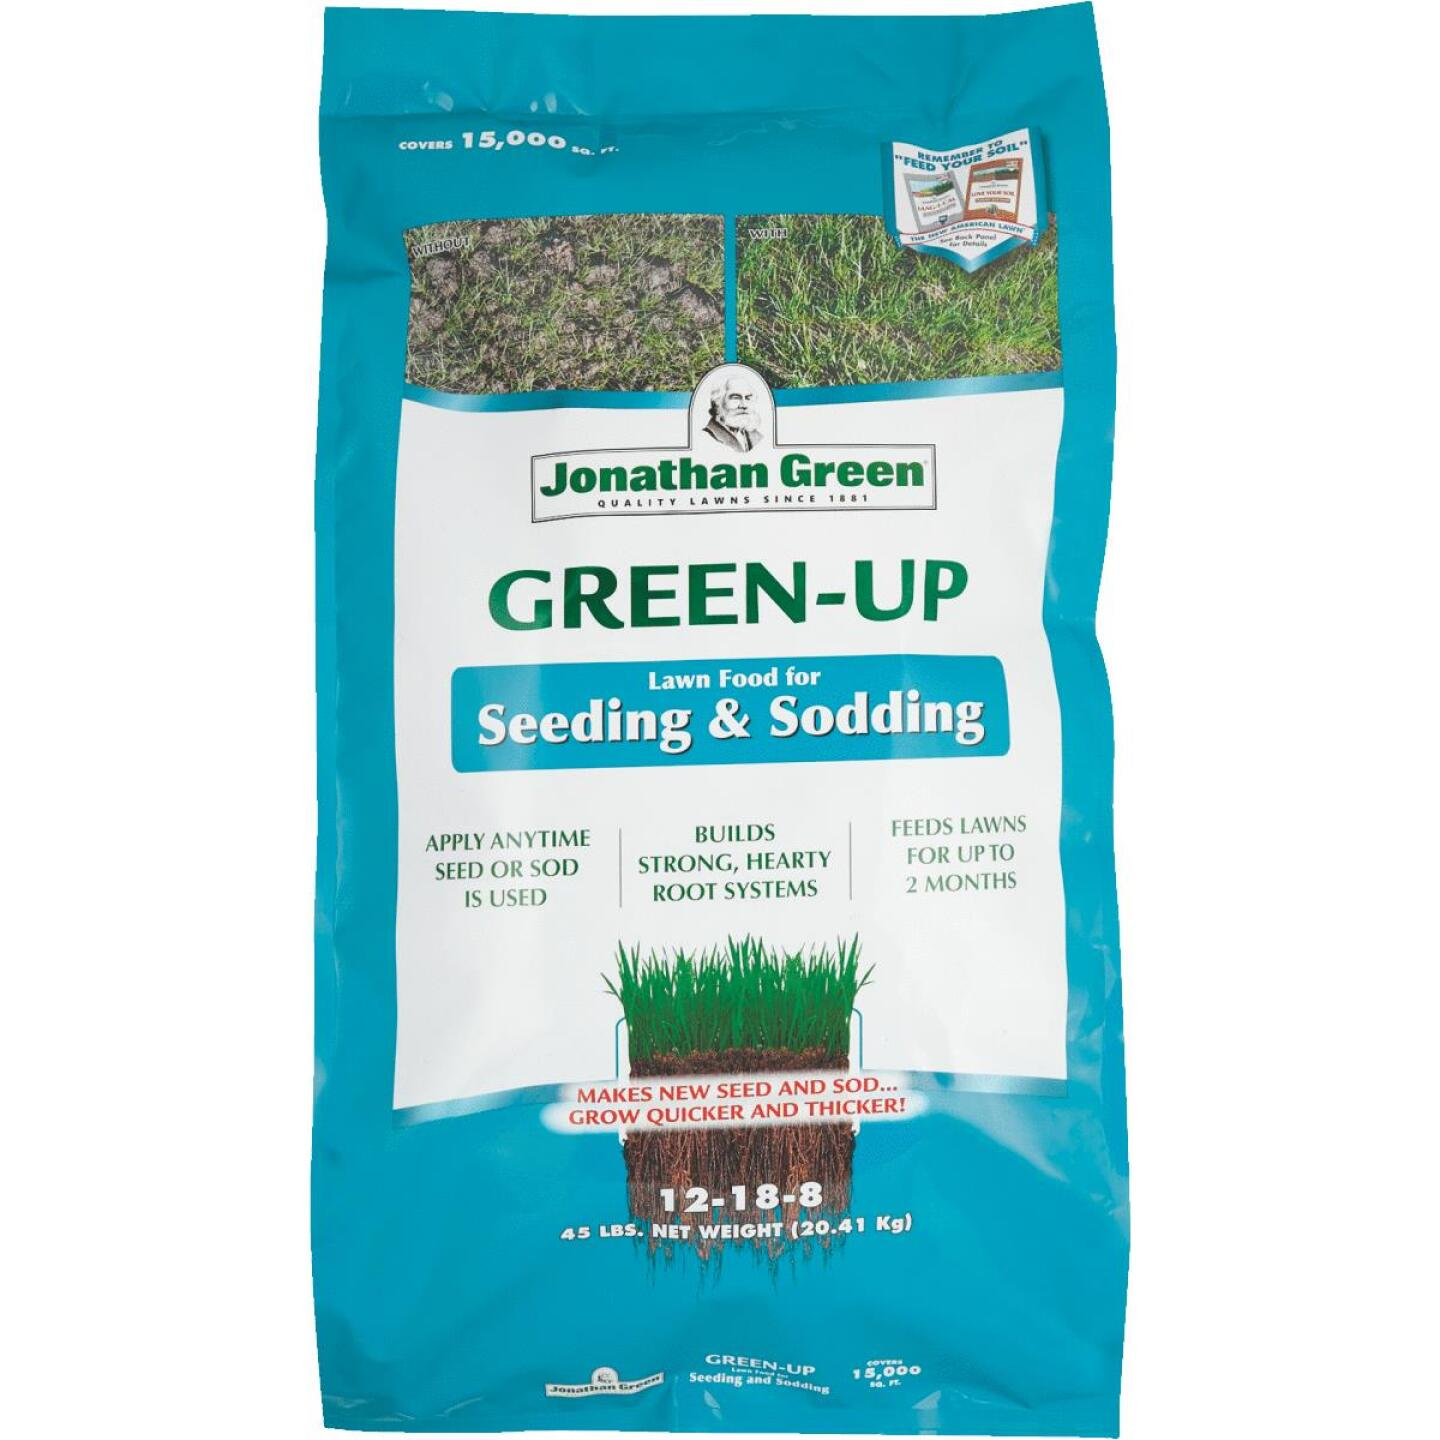 Jonathan Green Green-Up 45 Lb. 15,000 Sq. Ft. 12-18-8 Seeding & Sodding Lawn Fertilizer Image 1